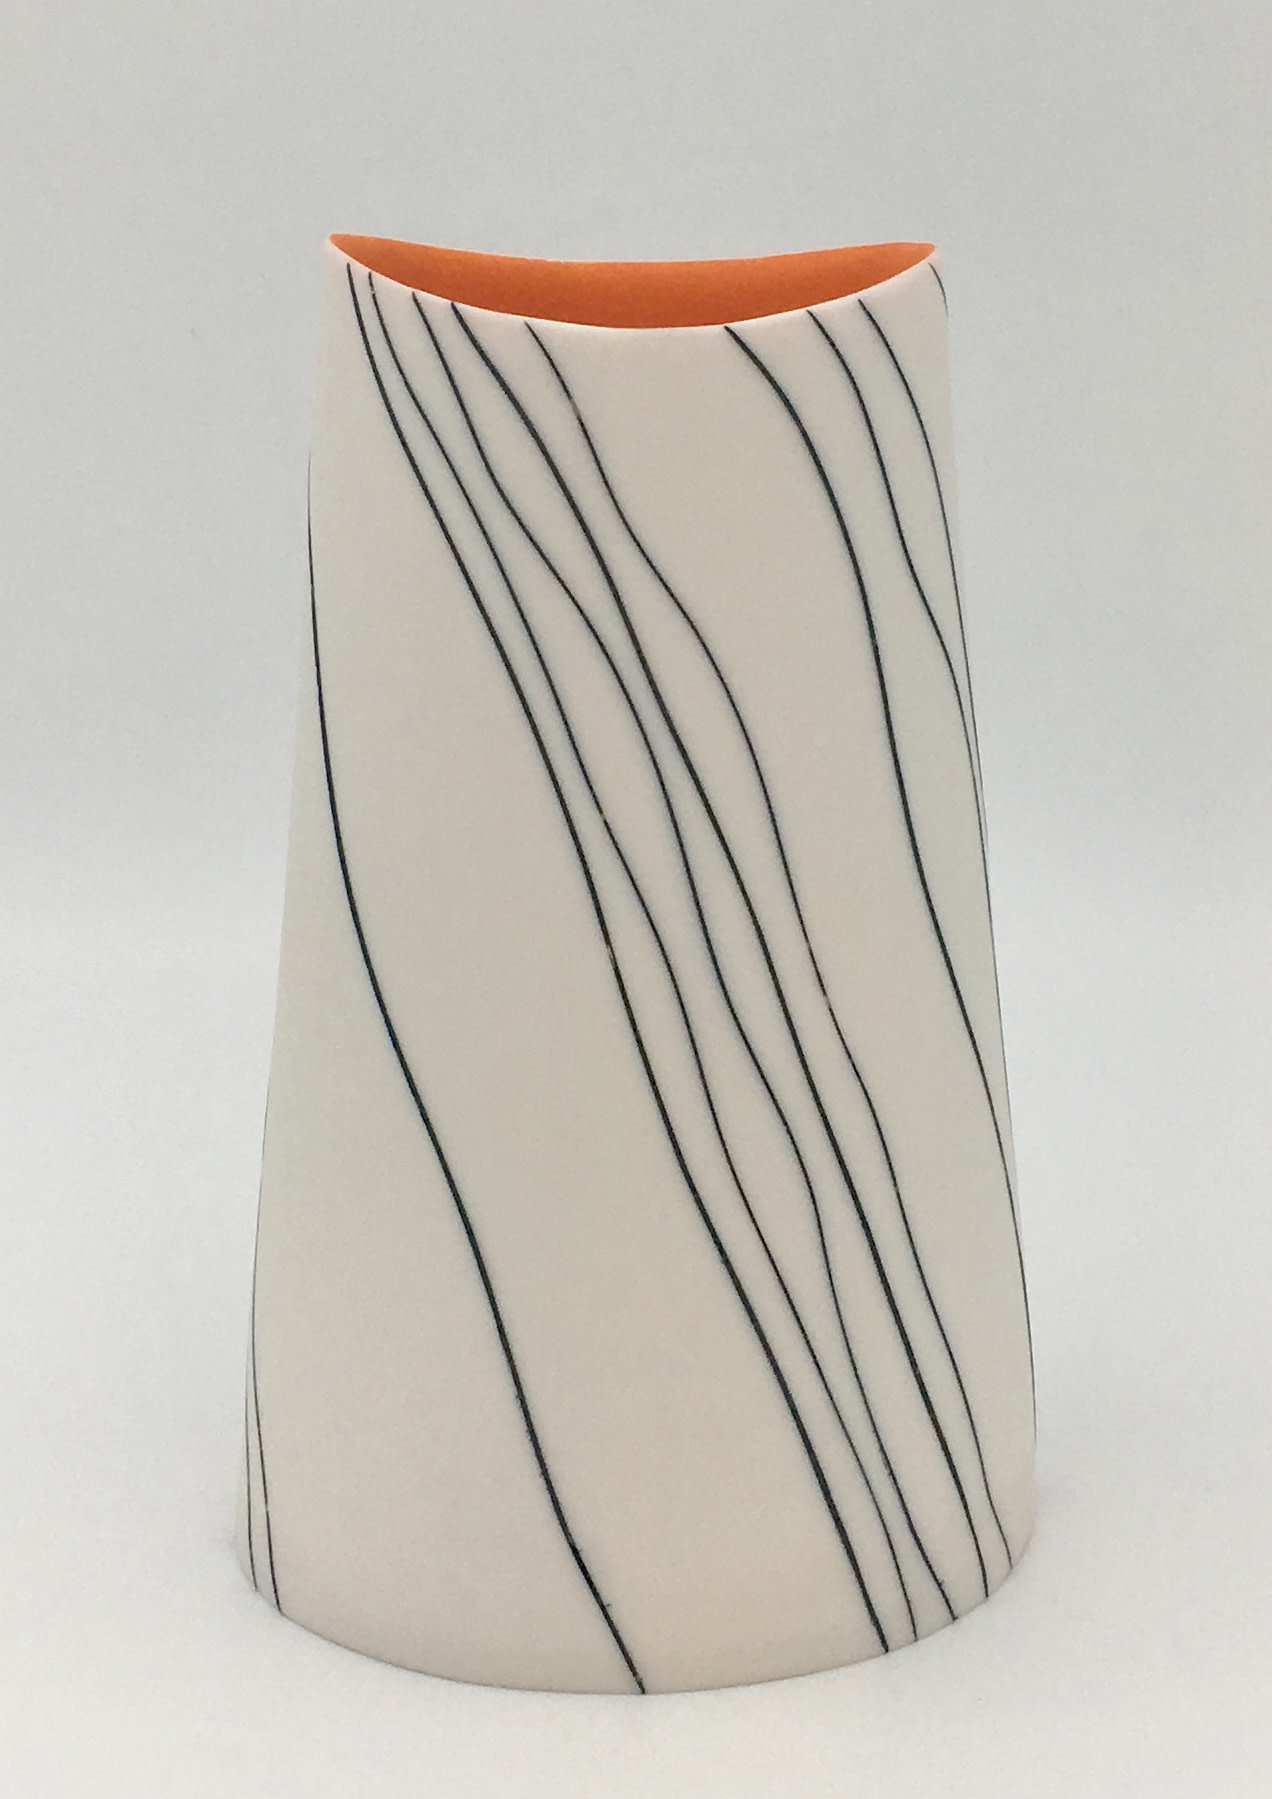 "<span class=""link fancybox-details-link""><a href=""/artists/195-lara-scobie/works/6527-lara-scobie-oval-vase-with-wave-stripes-2019/"">View Detail Page</a></span>Lara Scobie   Oval Vase with Wave Stripes, 2019   Porcelain  <div class=""copyright_line"">Own Art: £24 x 10 Months, 0% APR</div>"